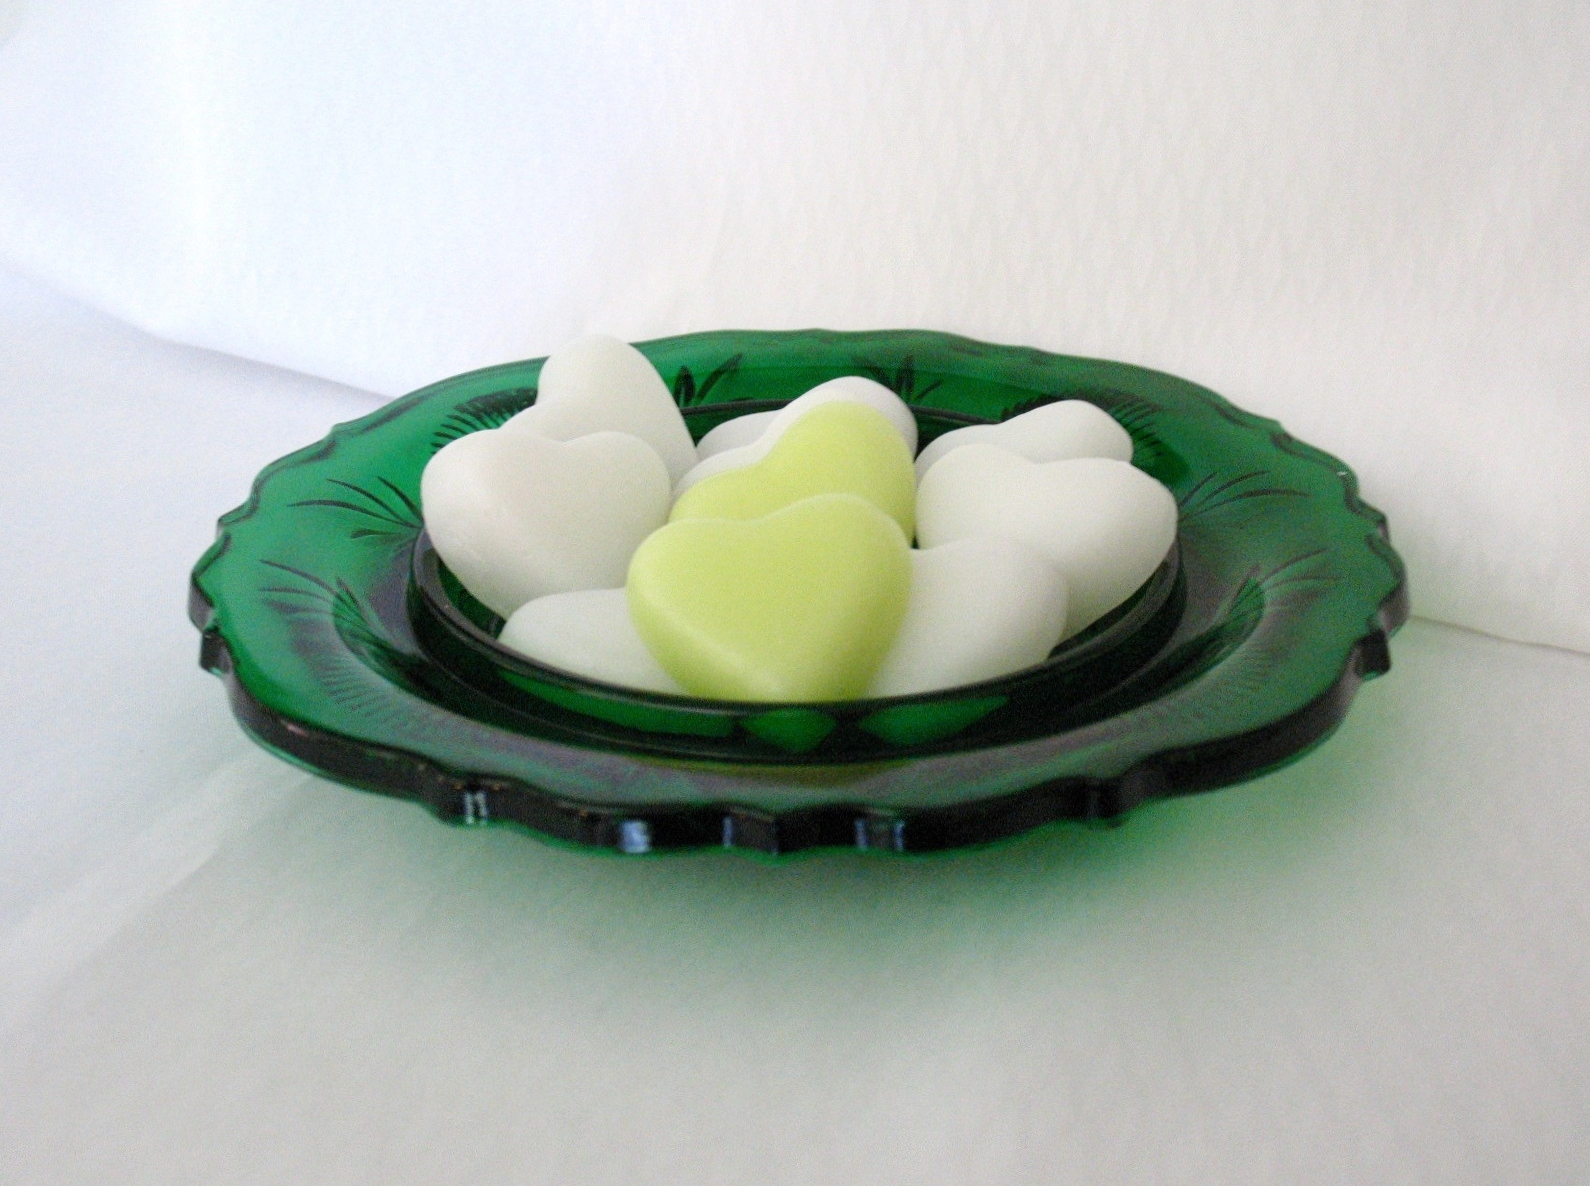 Hunter Green Inverted Thistle Candy Candle Dish Home Decor  image 4